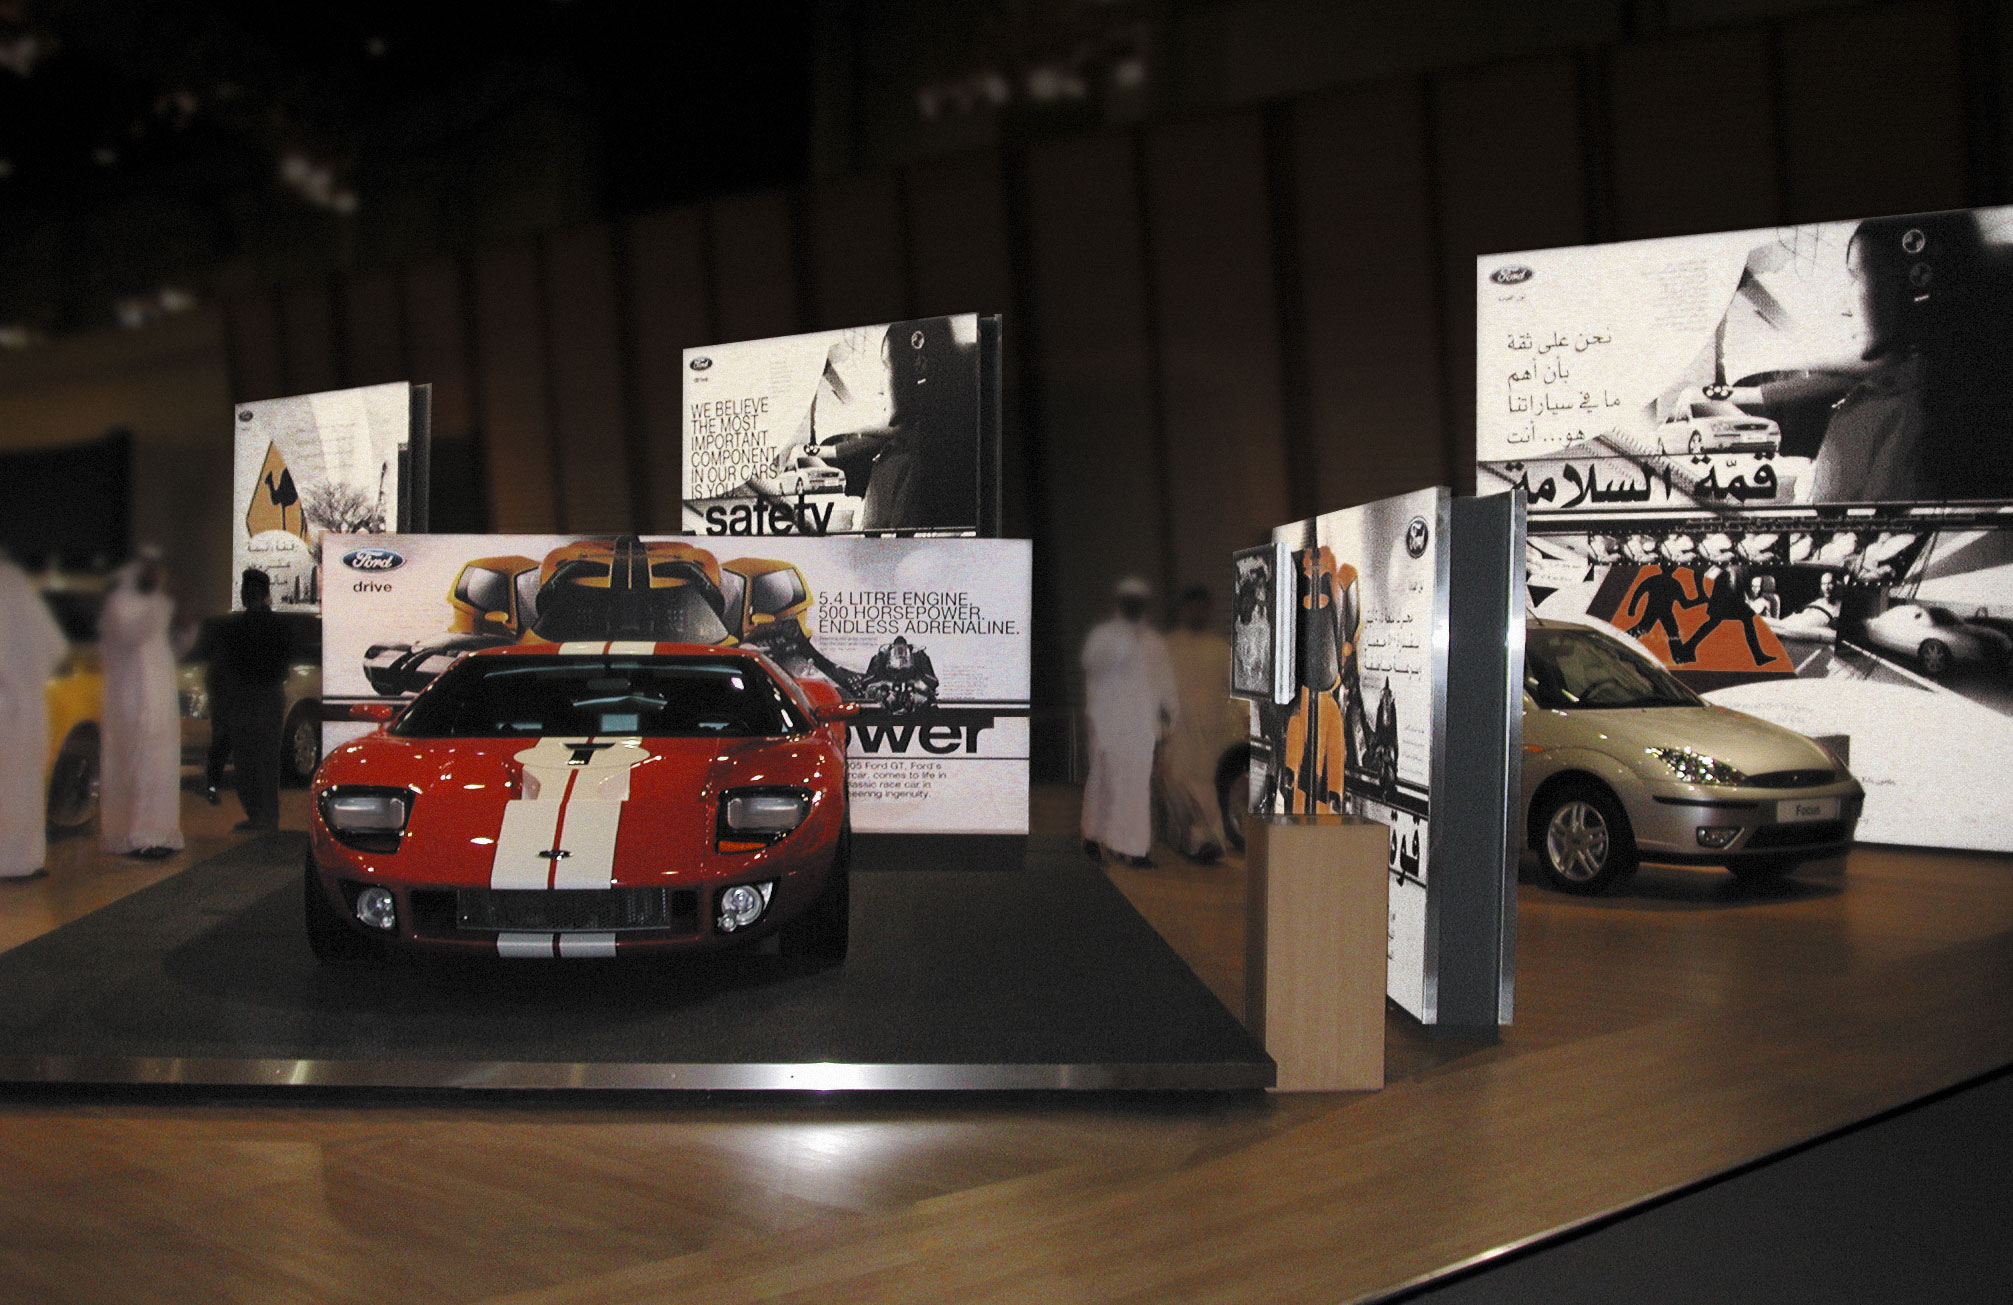 Designed like an open art gallery, various canvasses were laid across different car models. Each were strategically placed so the messages corresponds best to a particular car feature.